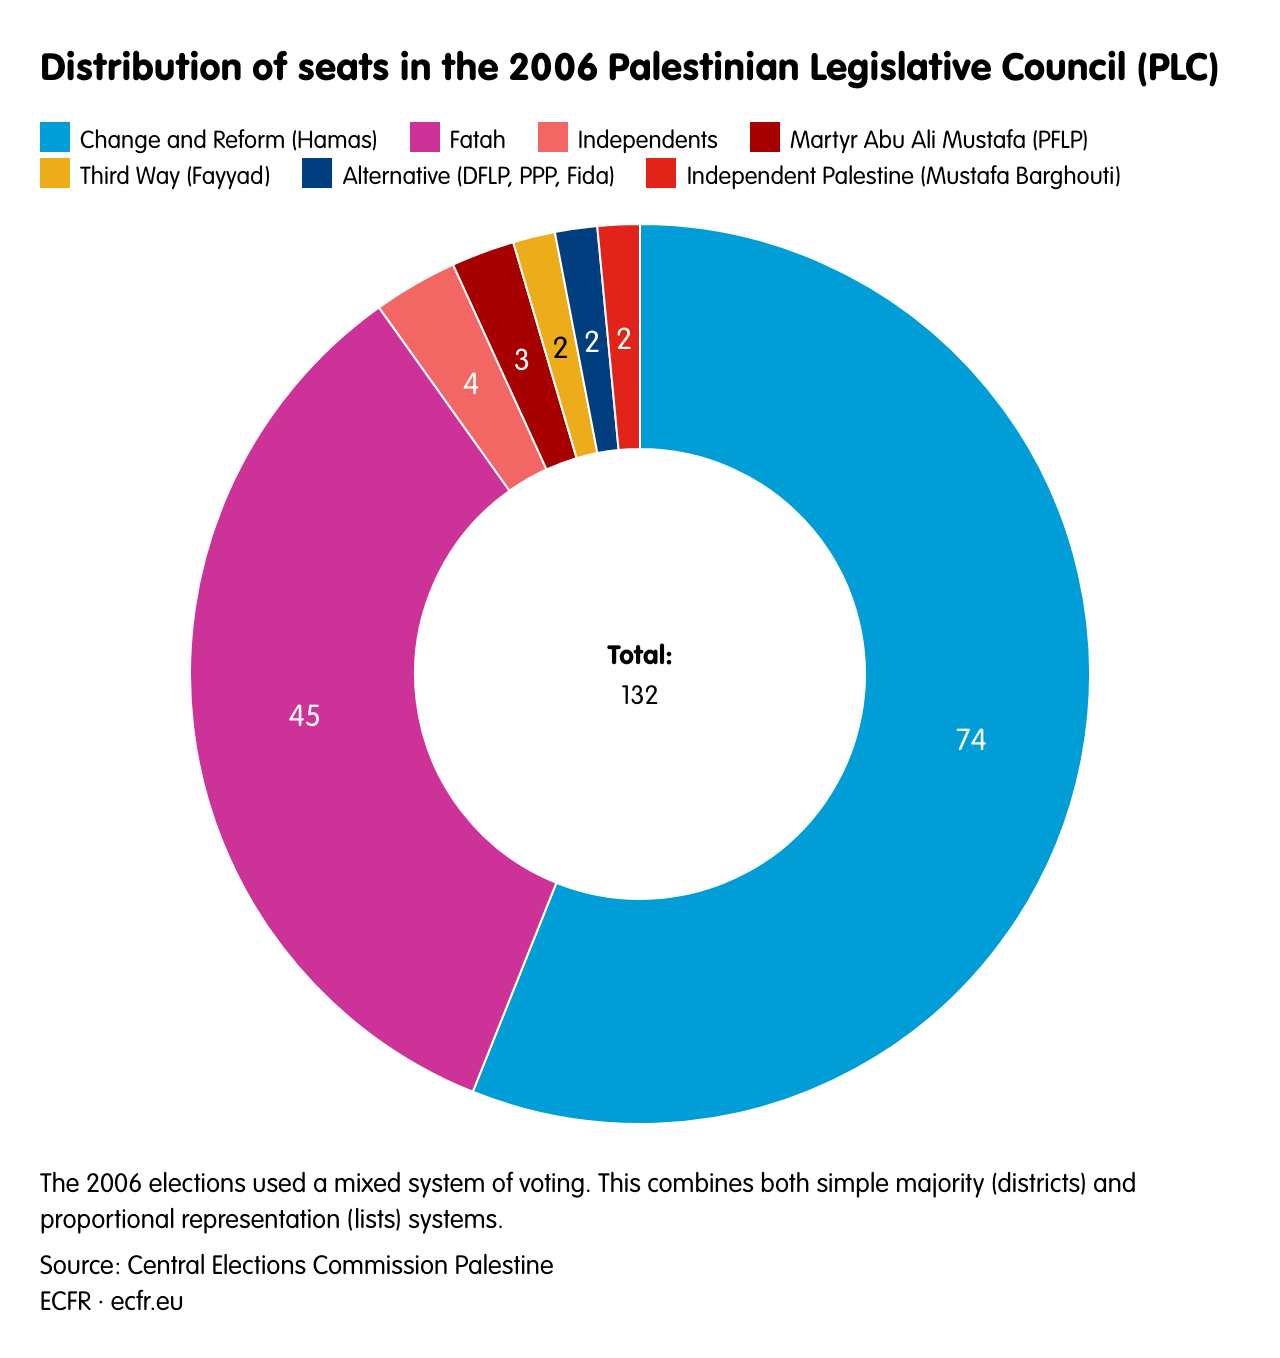 Distribution of seats in the 2006 Palestinian Legislative Council (PLC)